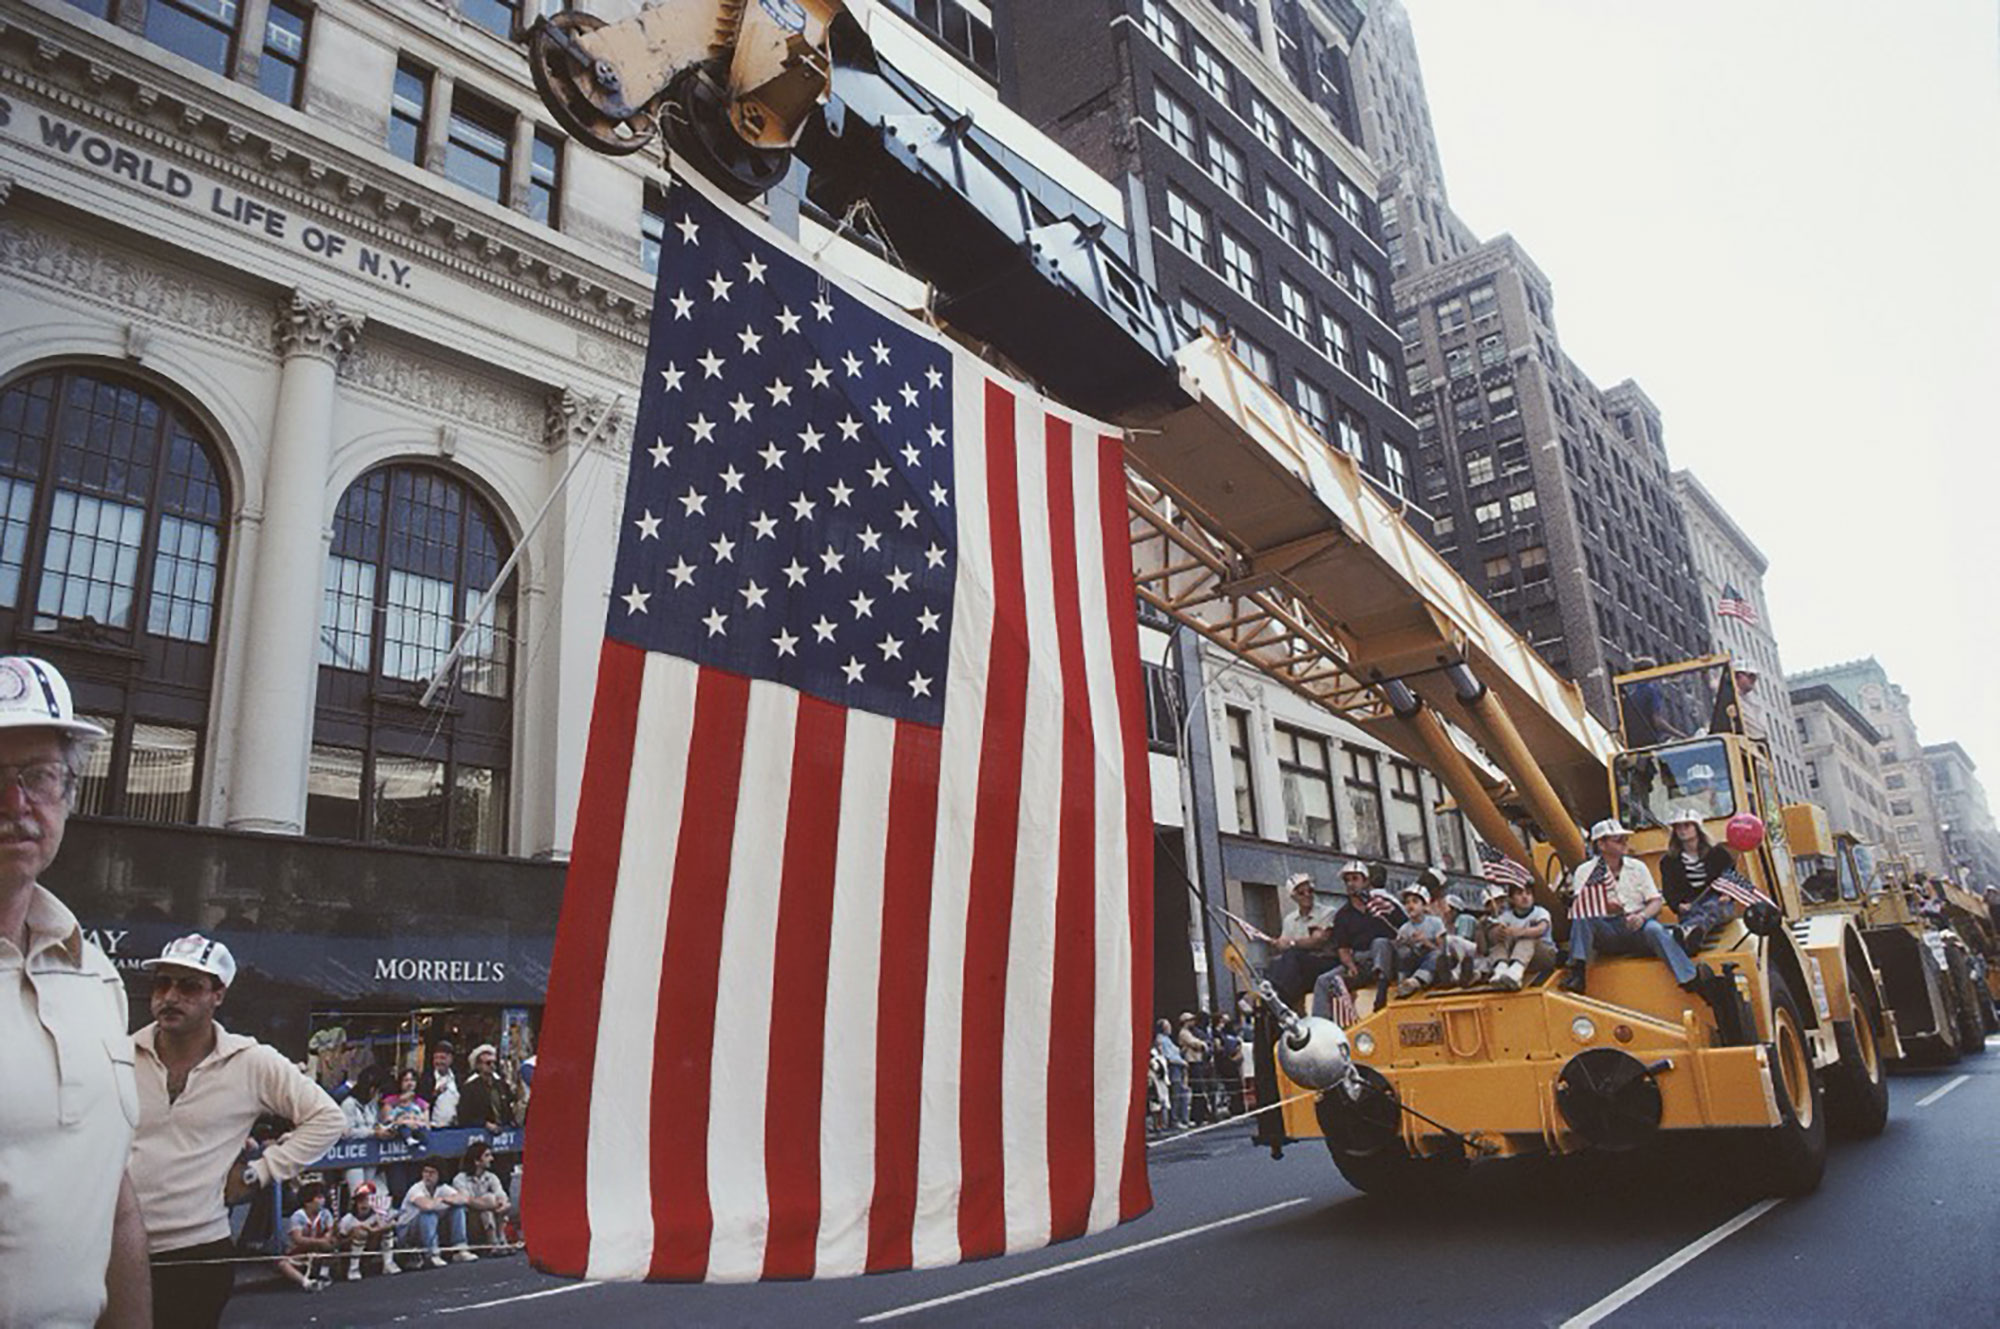 A large American flag is suspended from a crane in a Labor Day parade in New York City, 1982. Barbara Alper — Getty Images